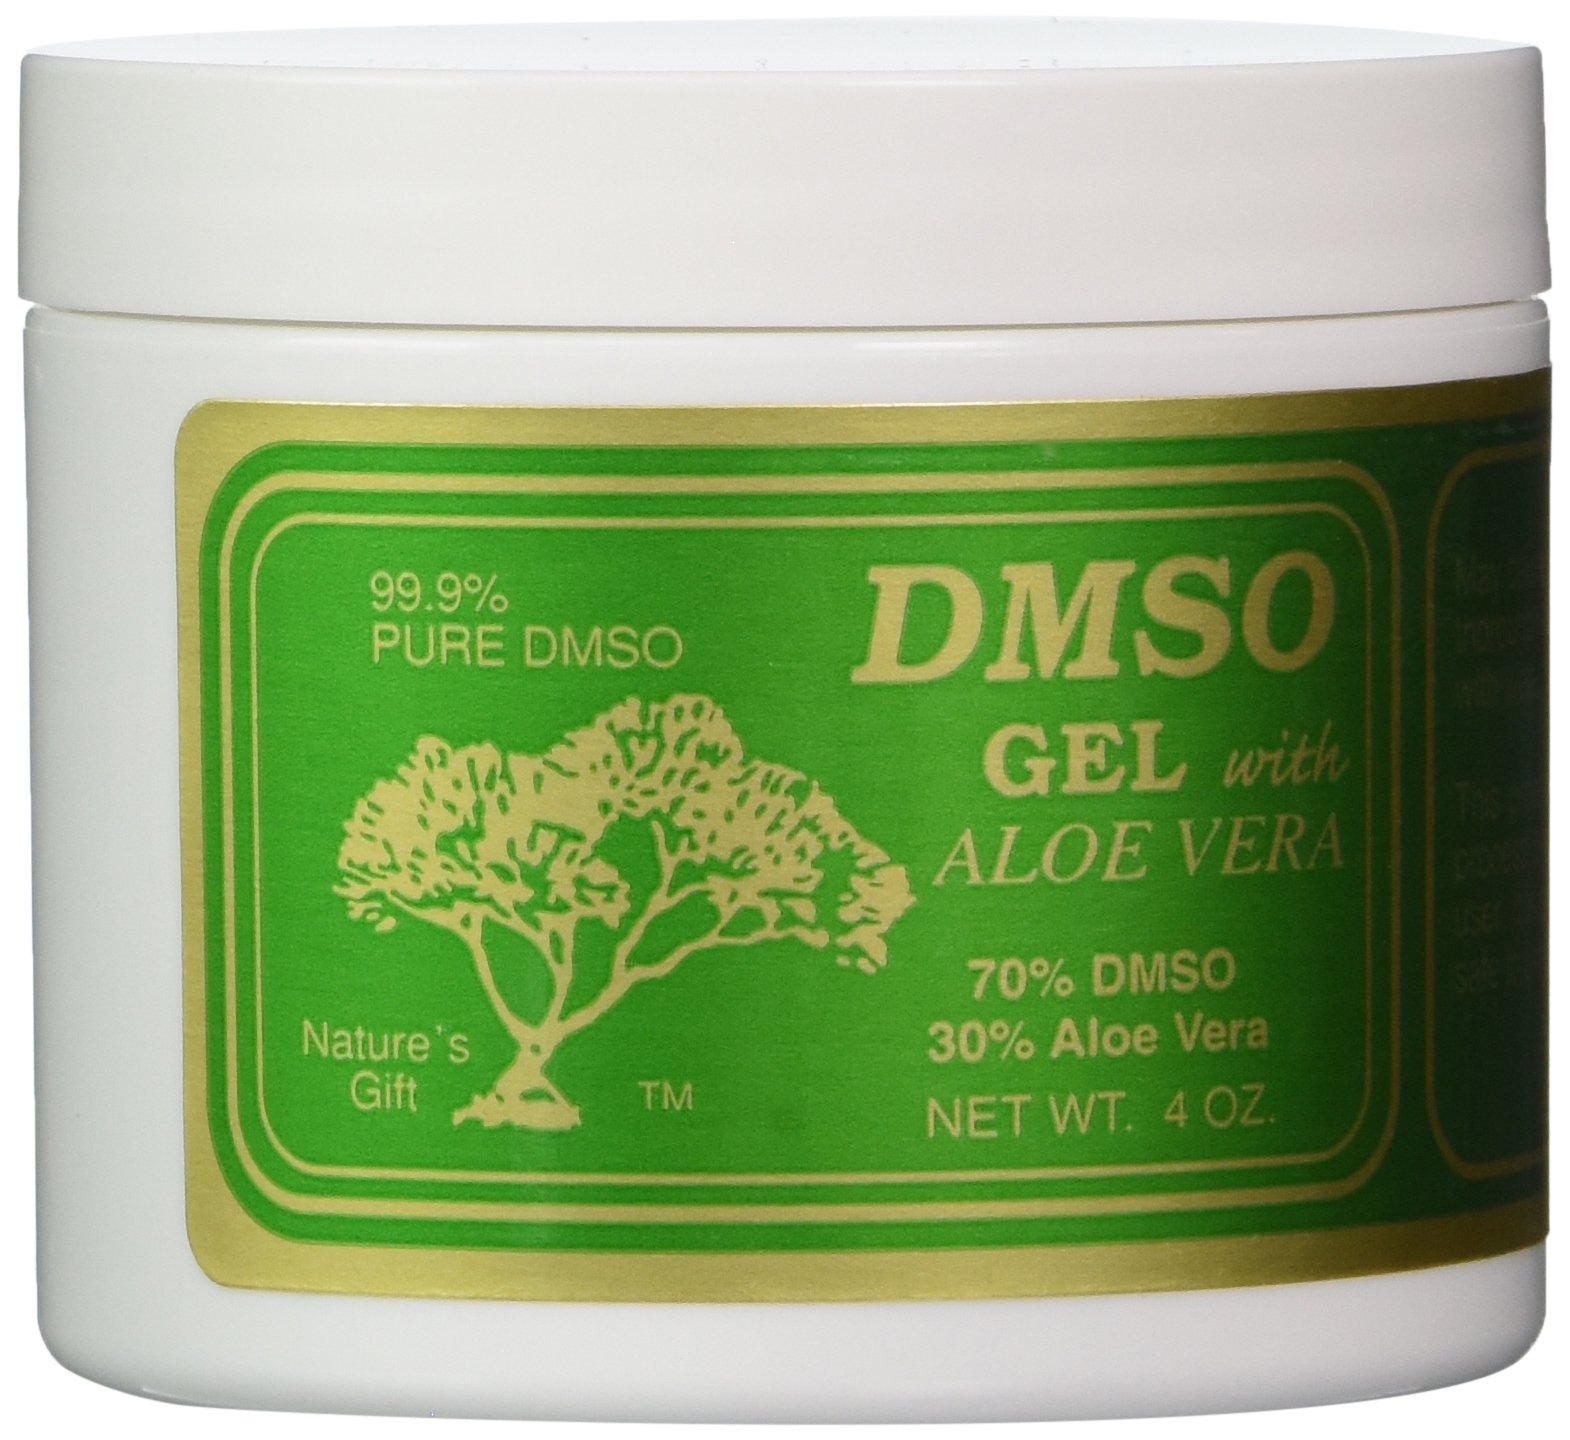 DMSO Gel with Aloe Vera, 4 Ounce by DMSO (Image #1)